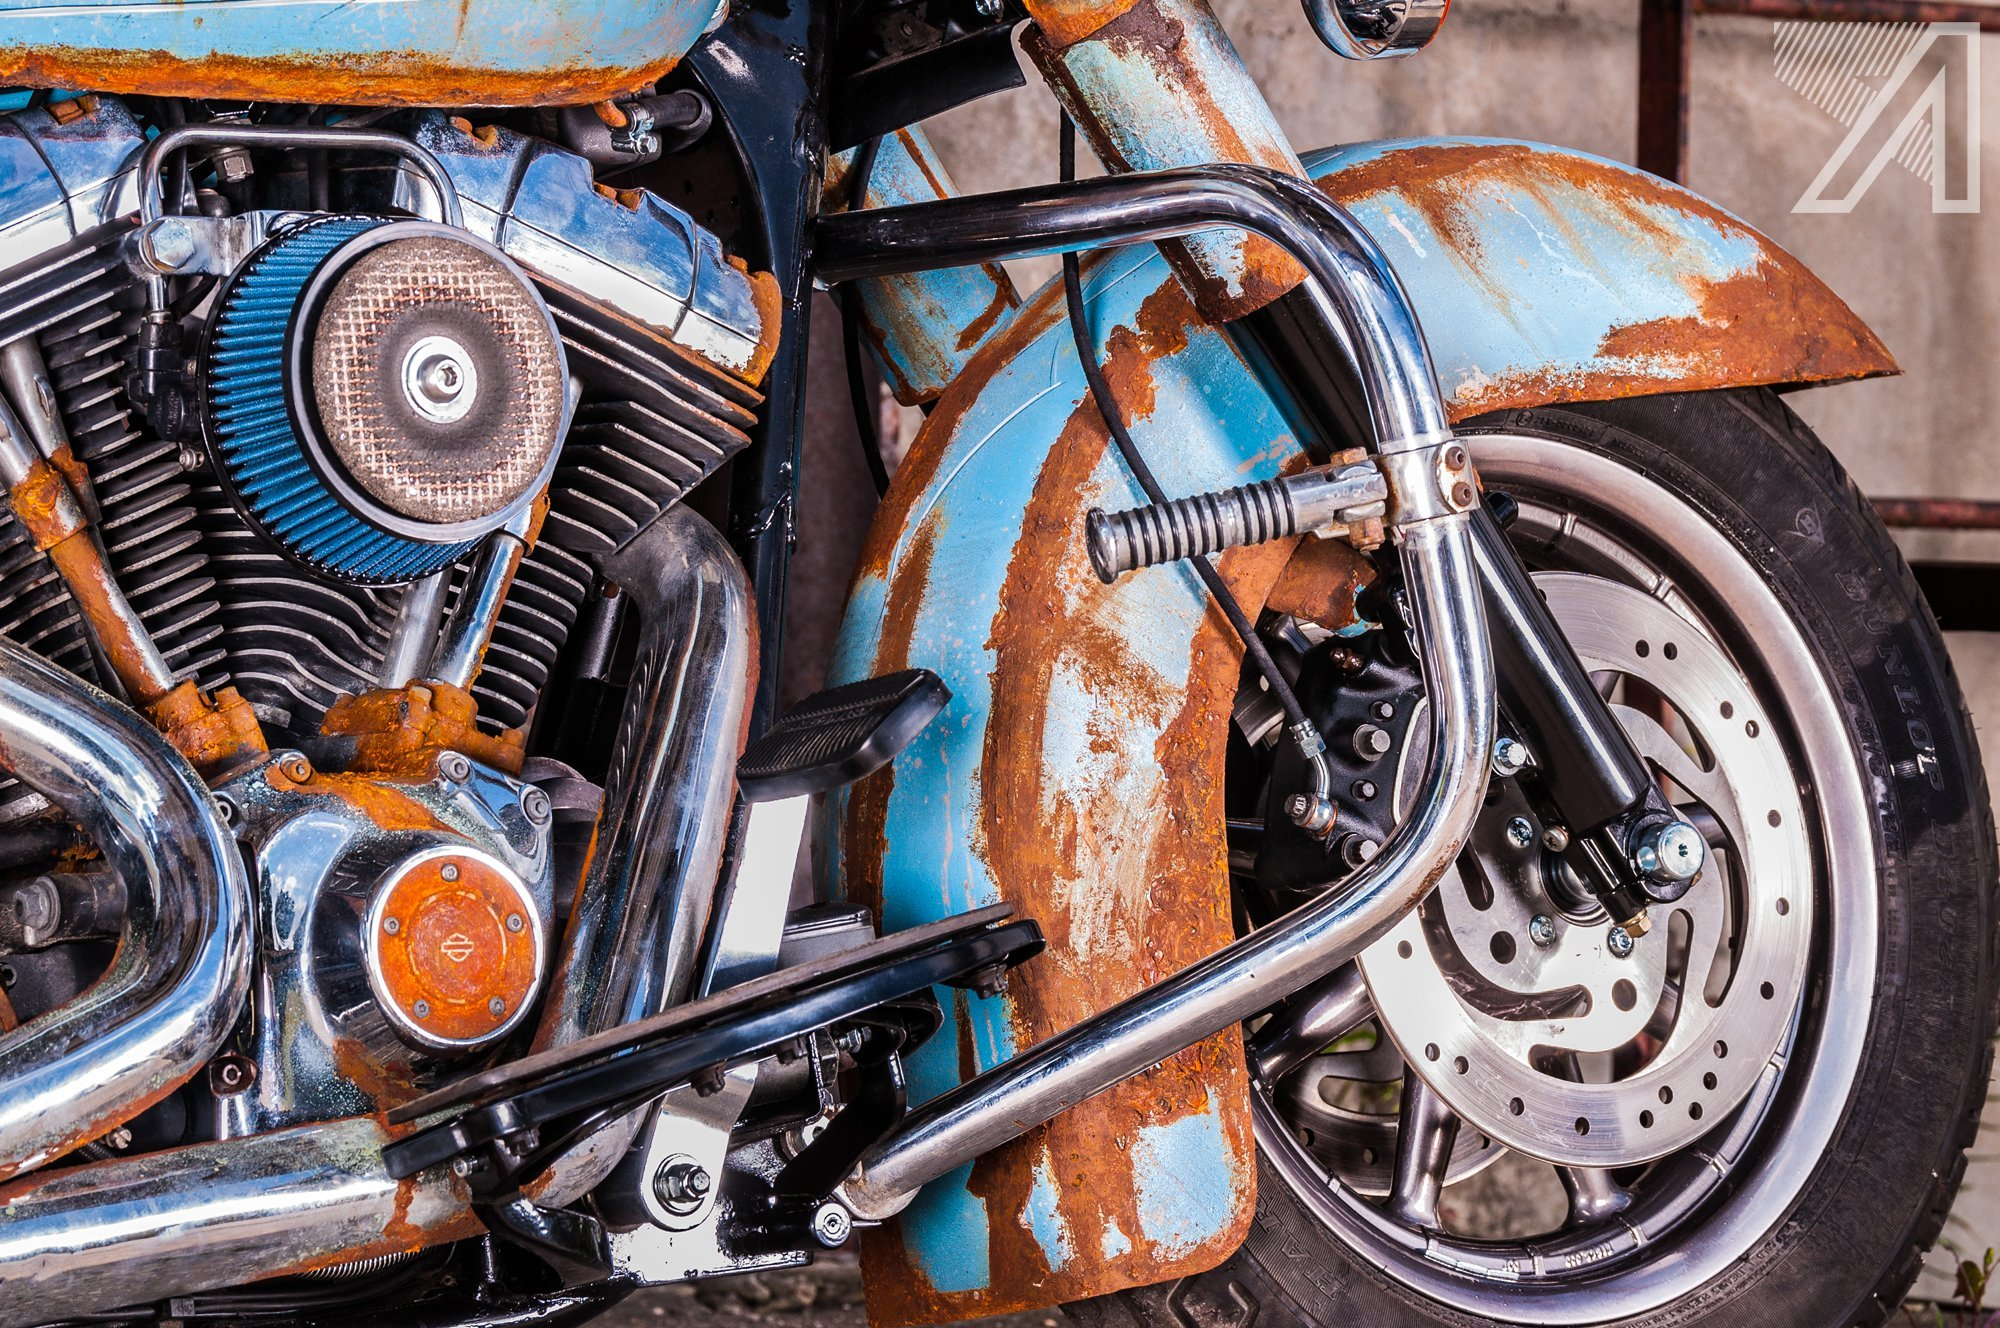 2016-10::1476031665-h-d-road-king-patina-rust-5.jpg